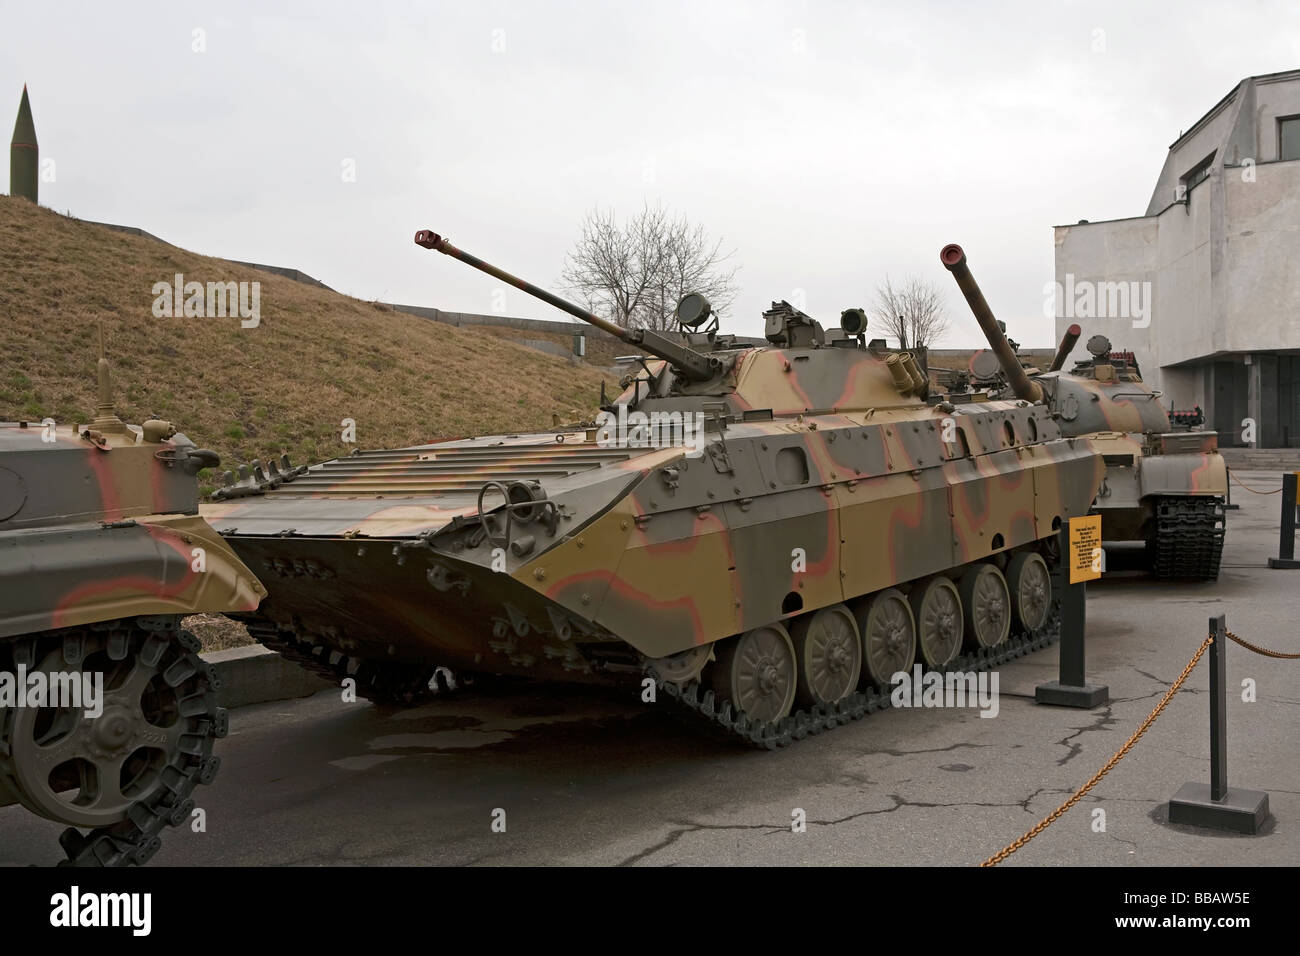 Kiev UkrainePatriotic park and National Museum of the History of the Great Patriotic War, Russian BMP 2 APC - Stock Image